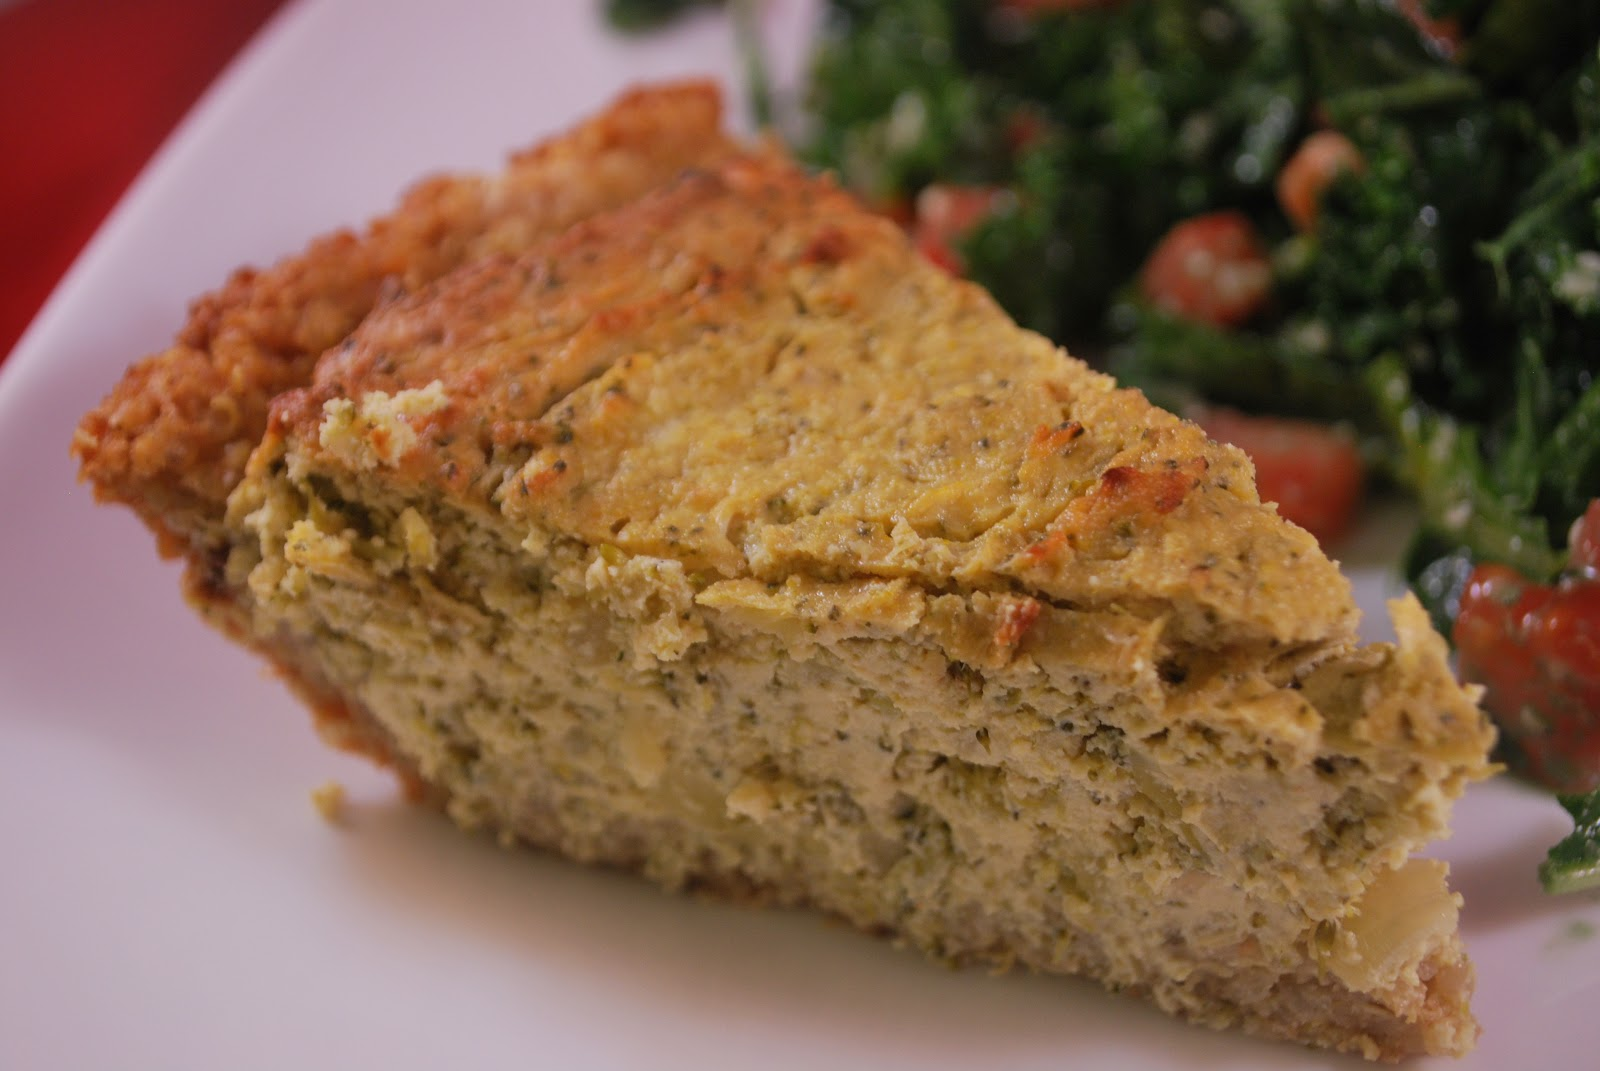 ... But I finally settled on this Tofu-Broccoli Quiche with Quinoa Crust